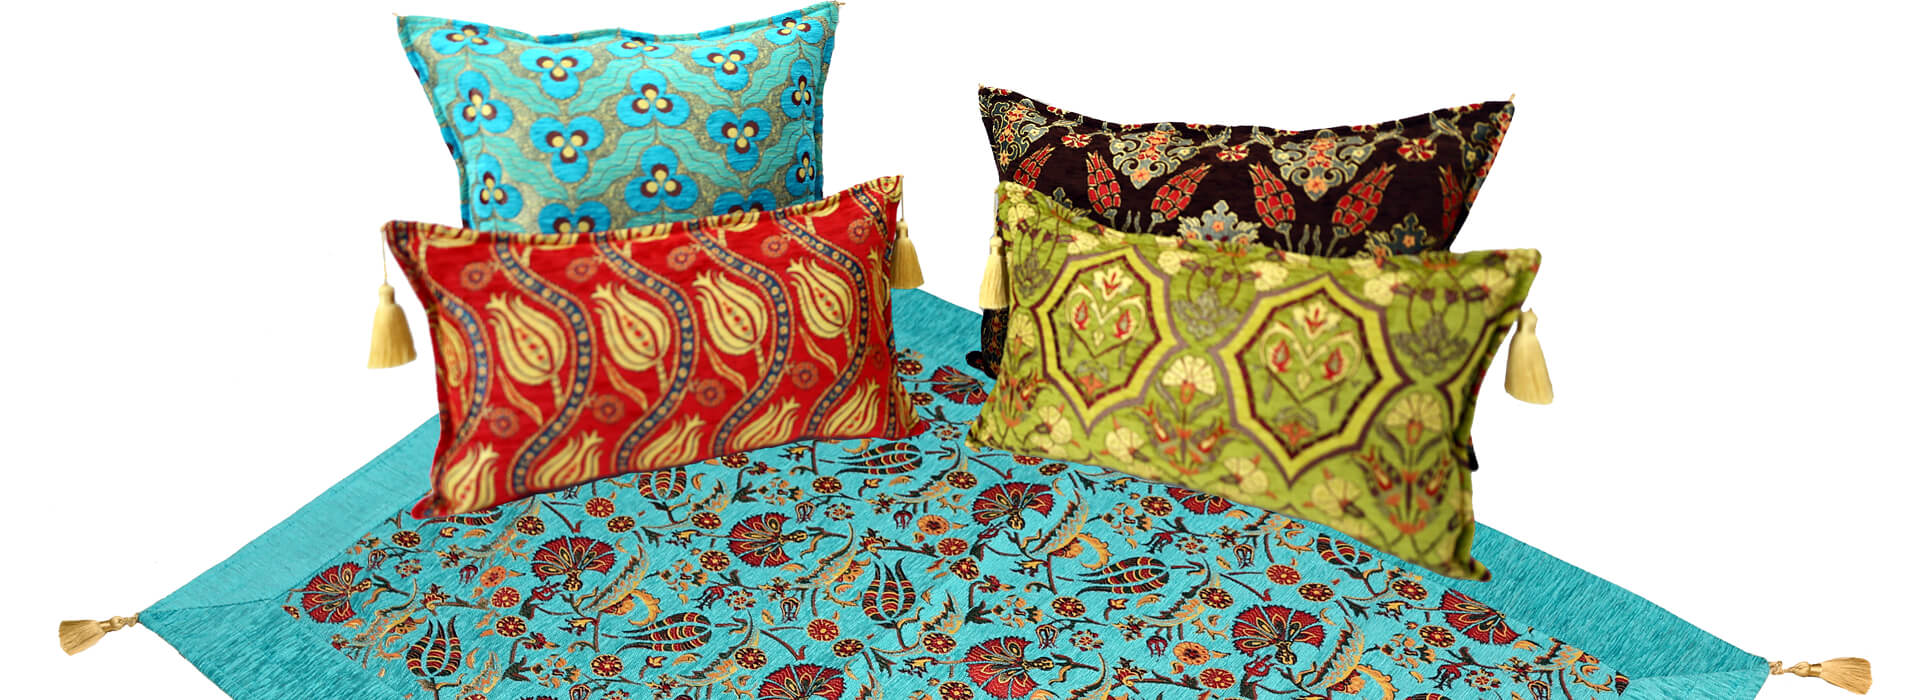 Ottoman Fabric Pillows